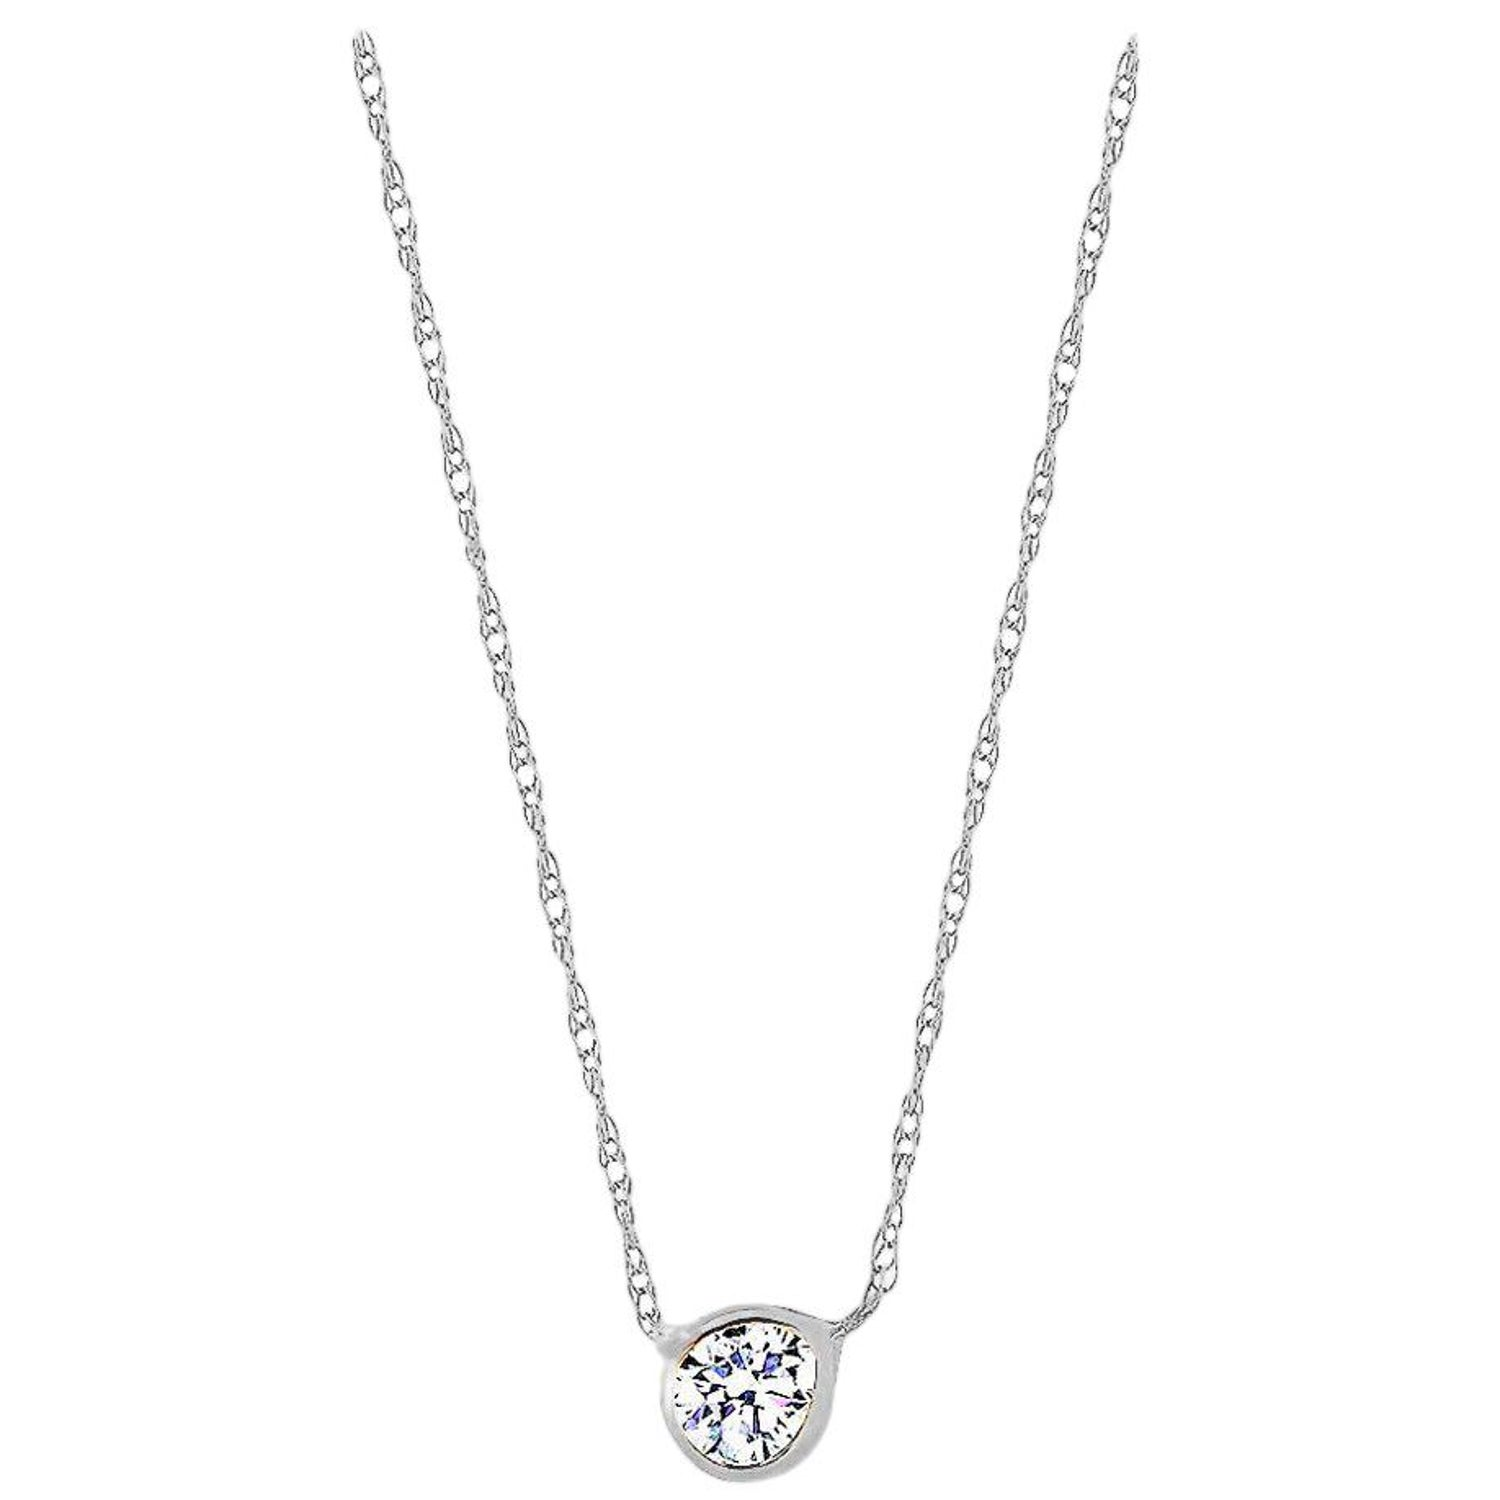 d1ca25eaf93a8b White Gold 15-Point Diamond Bezel Set in Pendant Necklace at 1stdibs